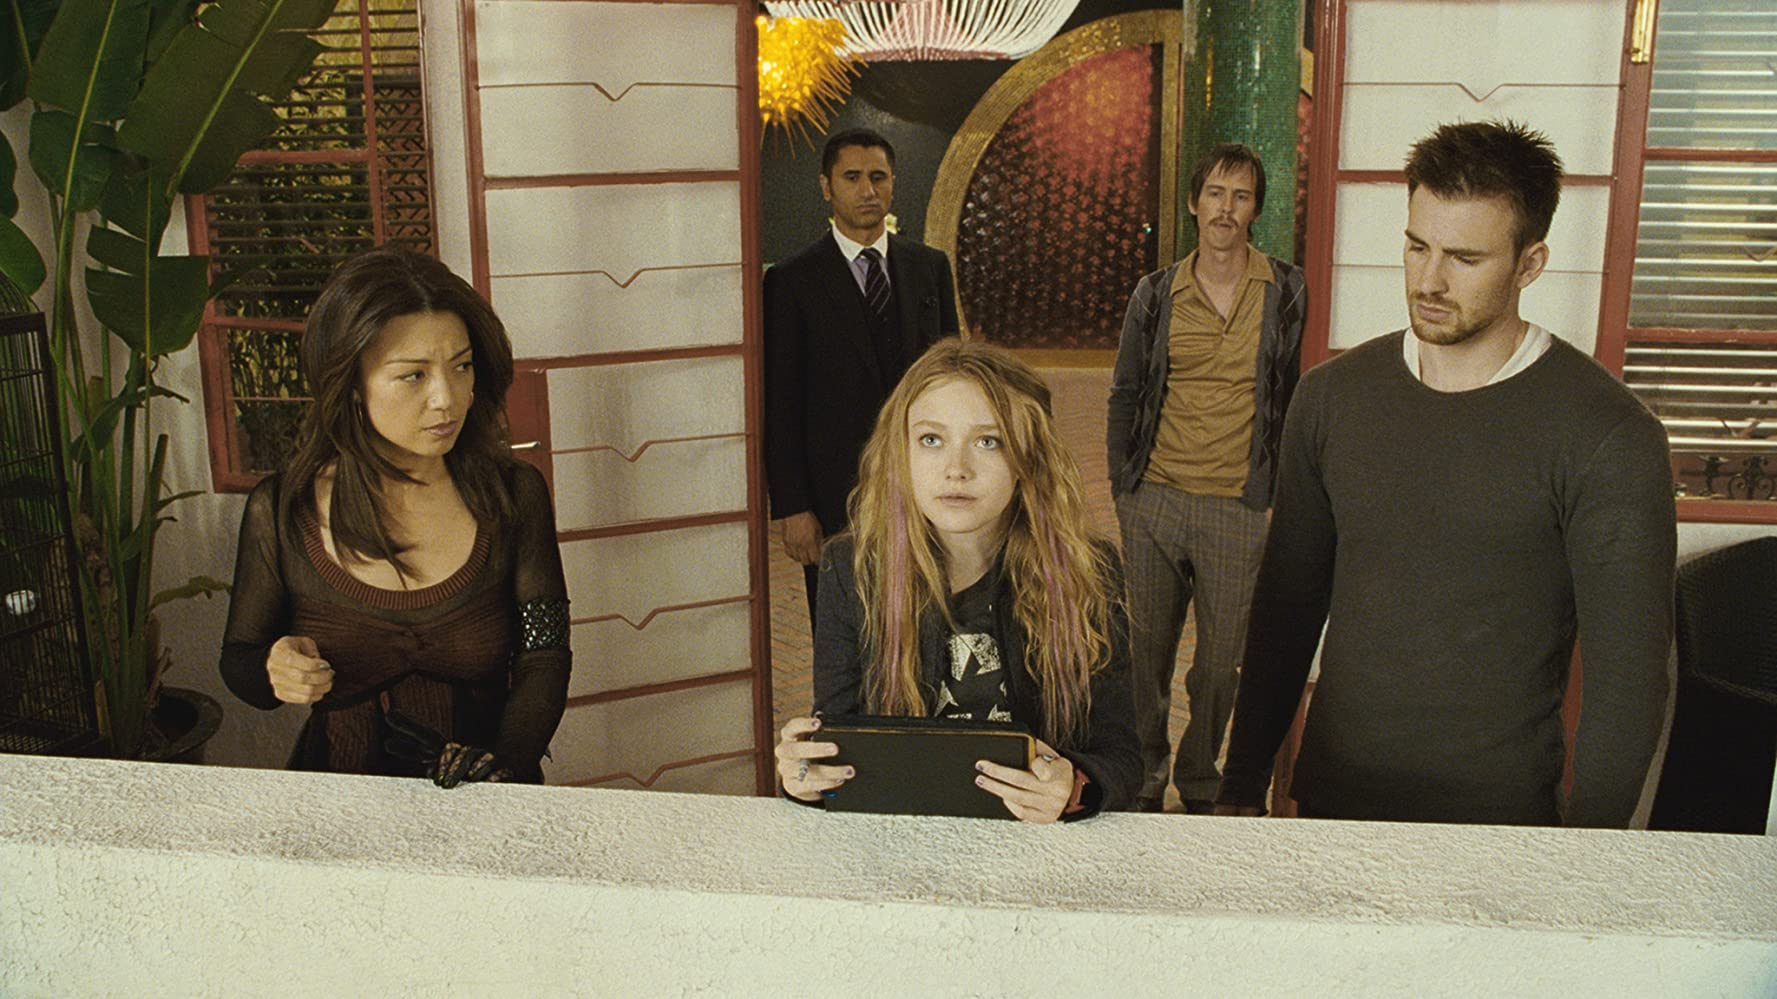 Ming-Na Wen, Cliff Curtis, Chris Evans, Dakota Fanning, and Nate Mooney in Push (2009)